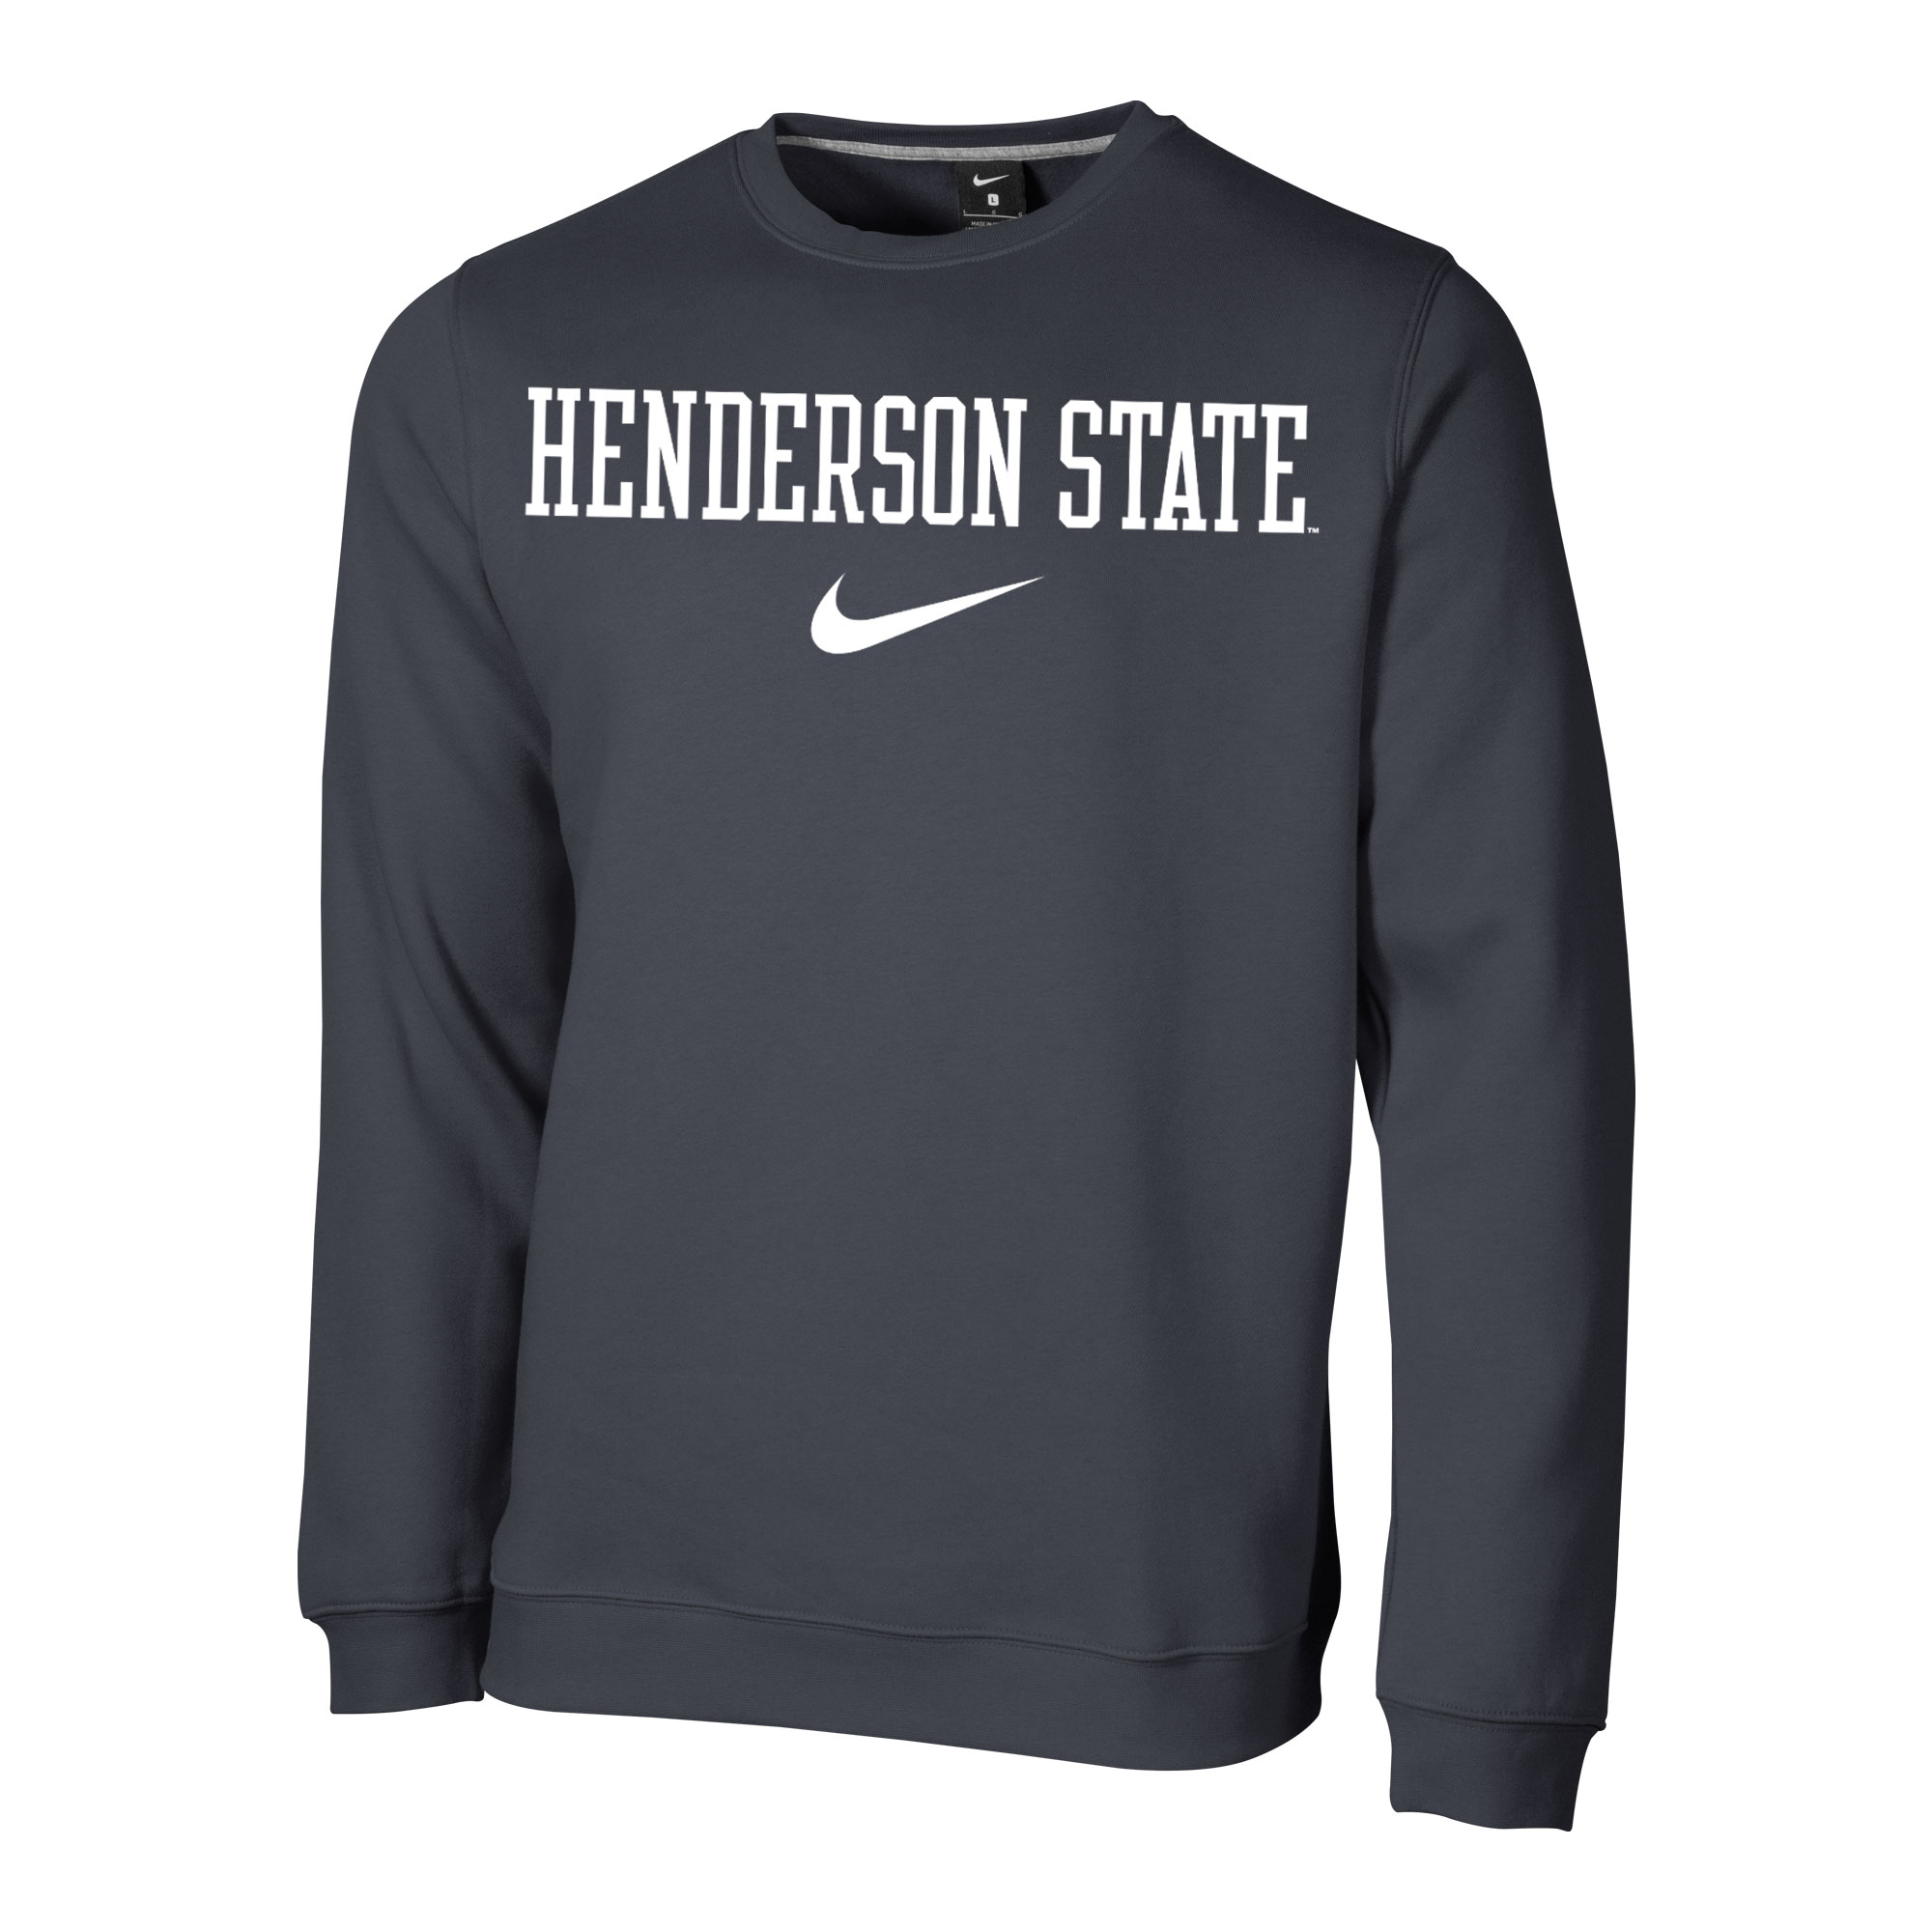 Henderson State Club Fleece Crew Sweatshirt